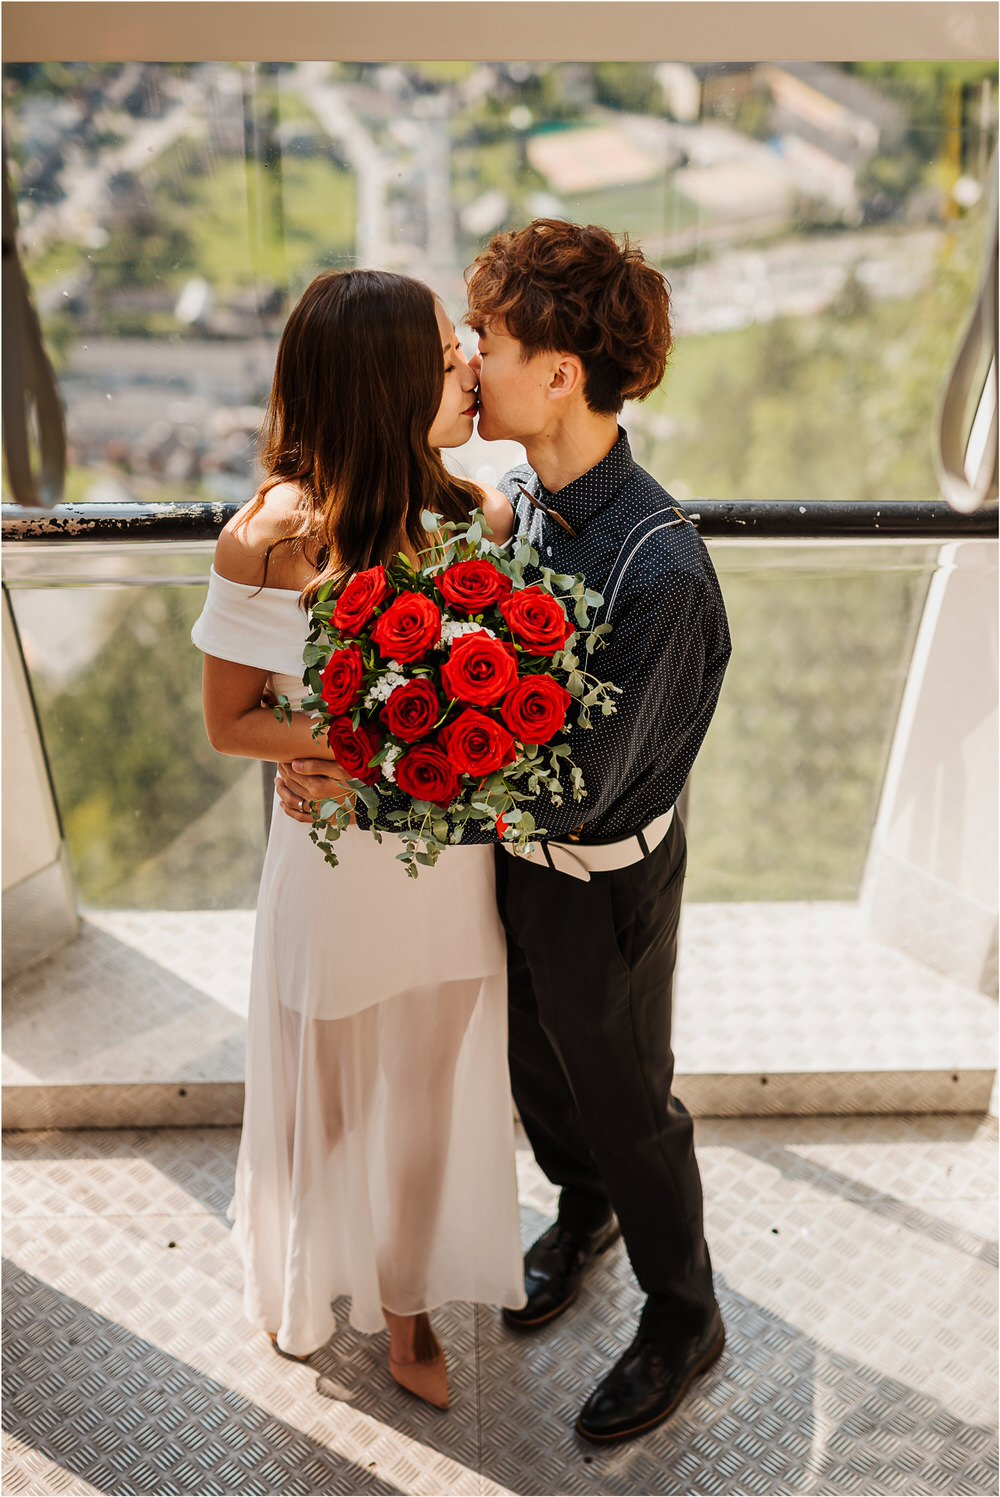 hallstatt austria wedding engagement photographer asian proposal surprise photography recommended nature professional 0072.jpg